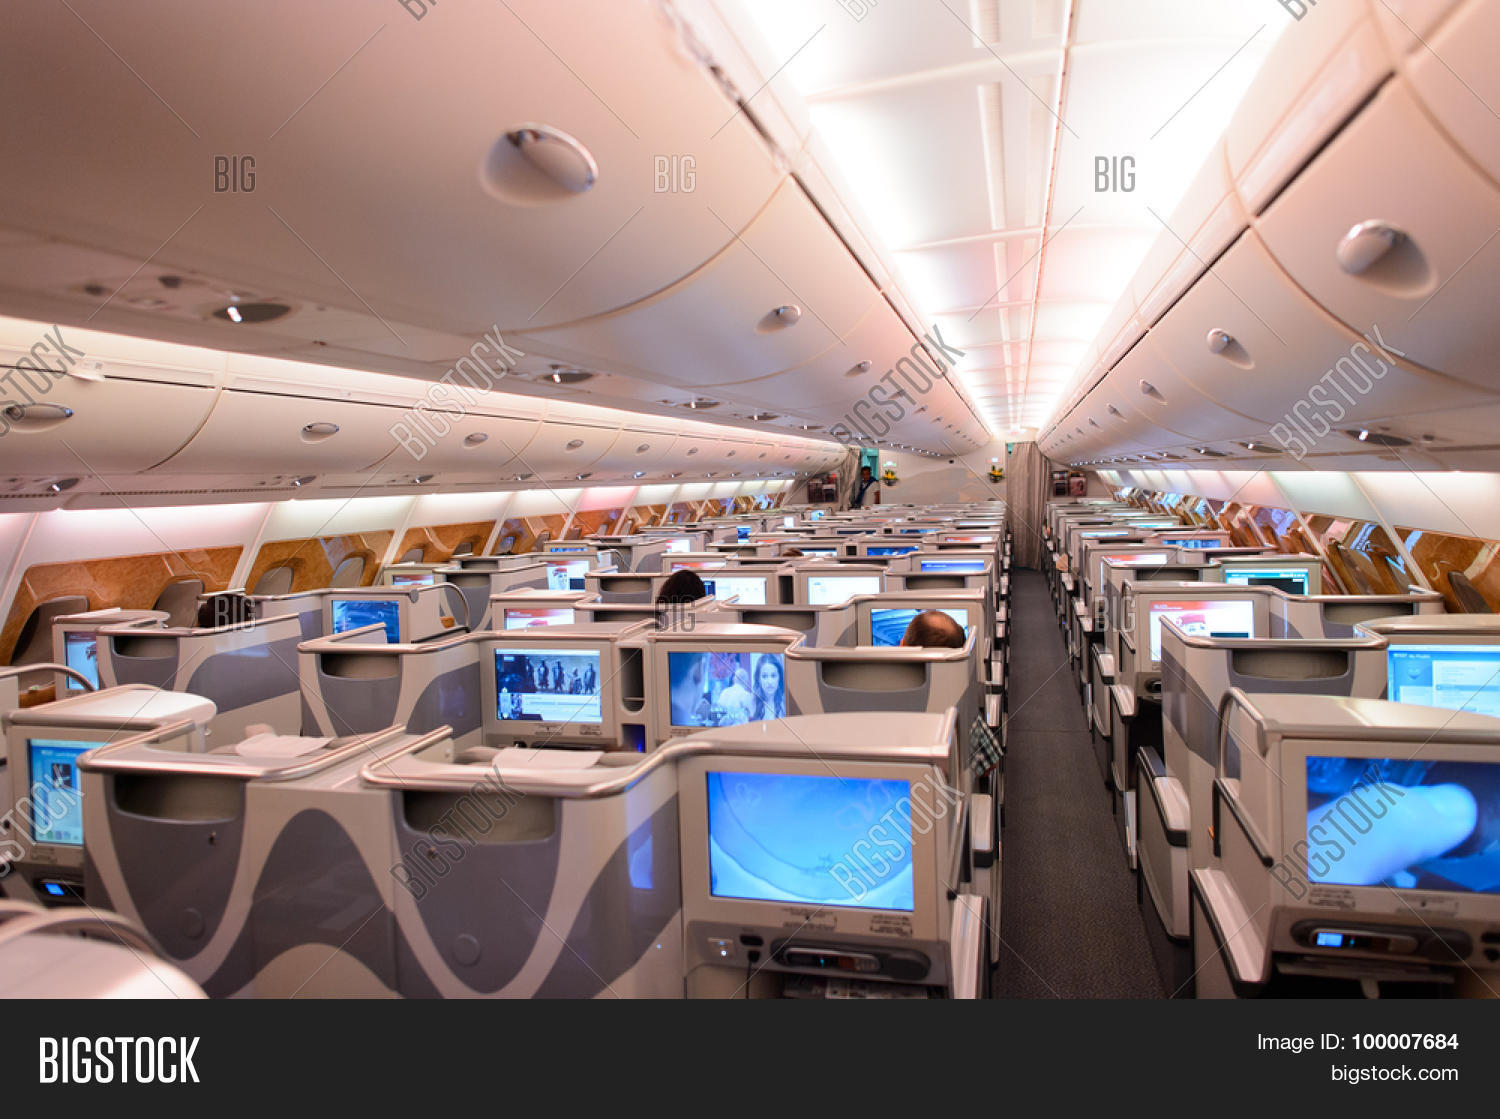 etihad plane sizes with Stock Photo Hong Kong June 18 2c 2015 3a Emirates Airbus A380 Business Class Interior Emirates Is One Of Two Flag Carriers Of The United Arab Emirates Along With Etihad Airways And Is Based In Dubai on mercial Airlines likewise 11561692903 as well How To Tell The Difference Between Planes likewise 2012 05 01 archive as well Aeronave de fuselagem larga.